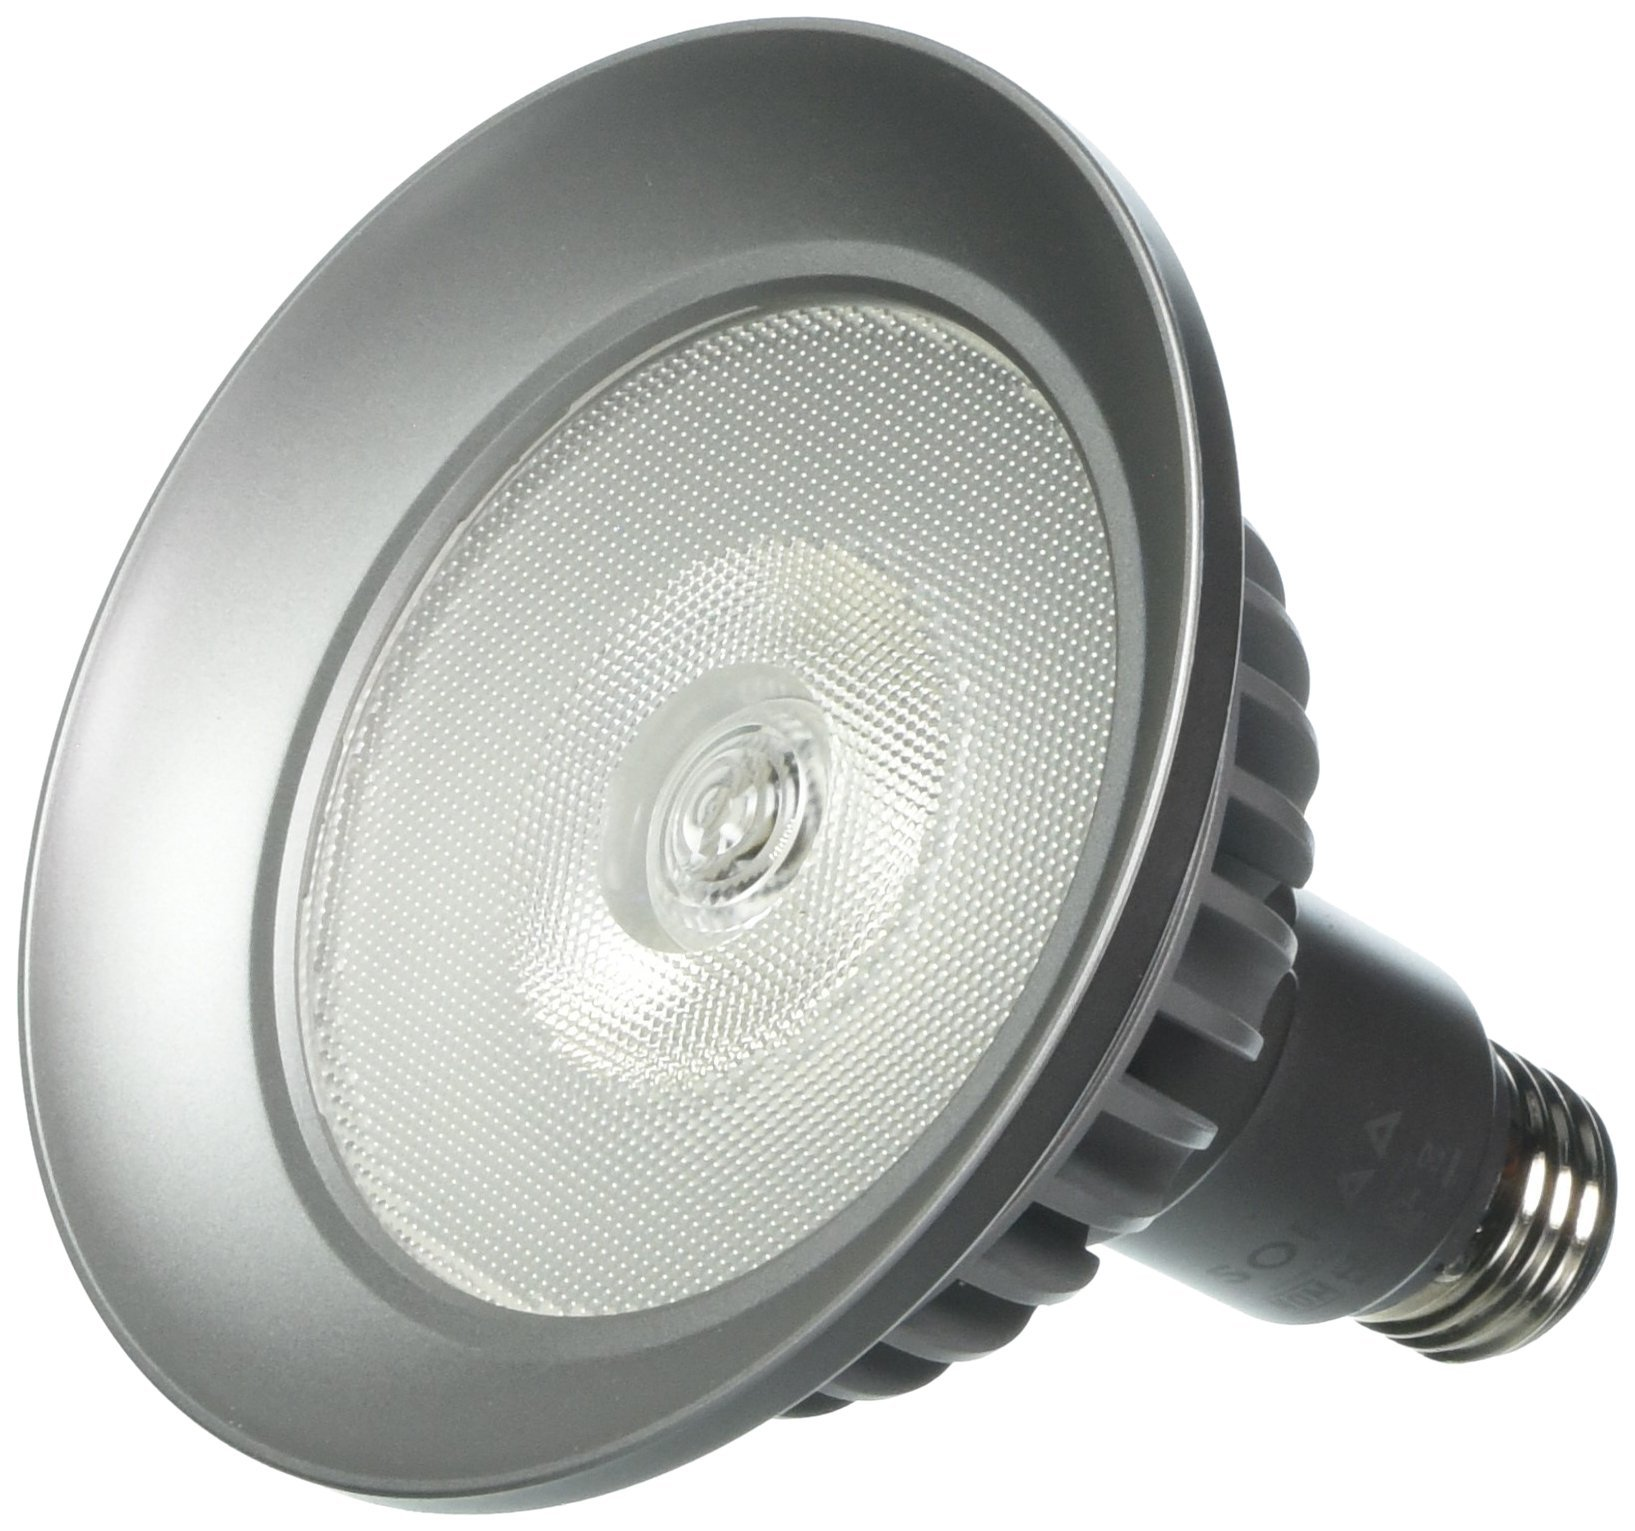 Bulbrite SP38-18-36D-930-03 SORAA 18.5W LED PAR38 3000K VIVID 36° Dimmable Light Bulb, Silver